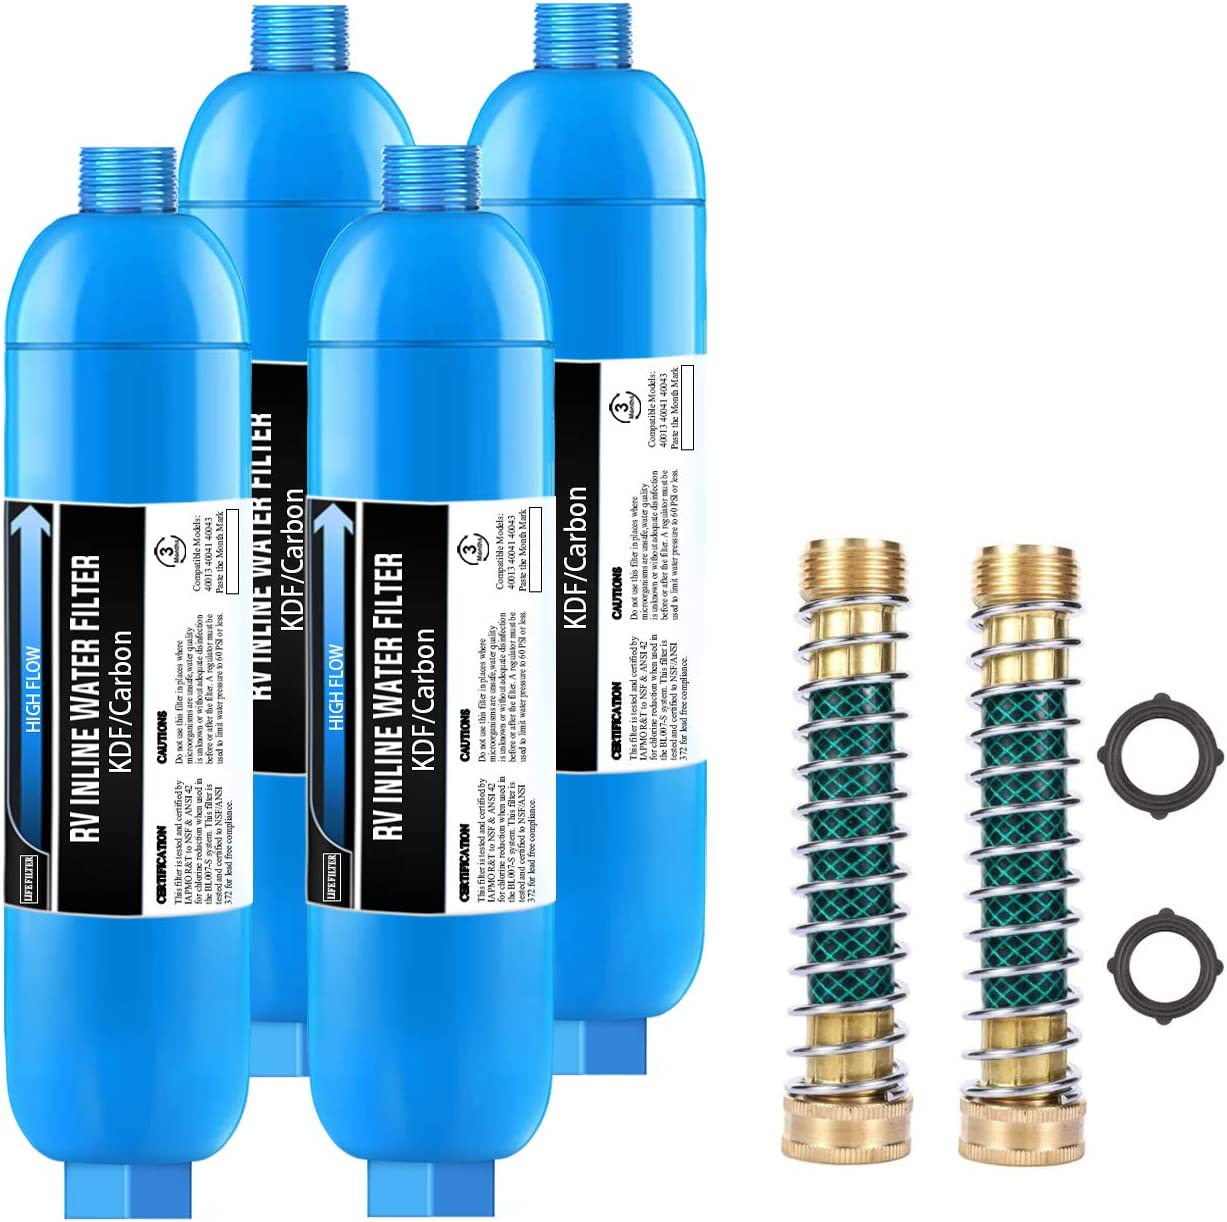 Lifefilter RV Inline Water Filter with Purchase Hose Flexible Protector safety